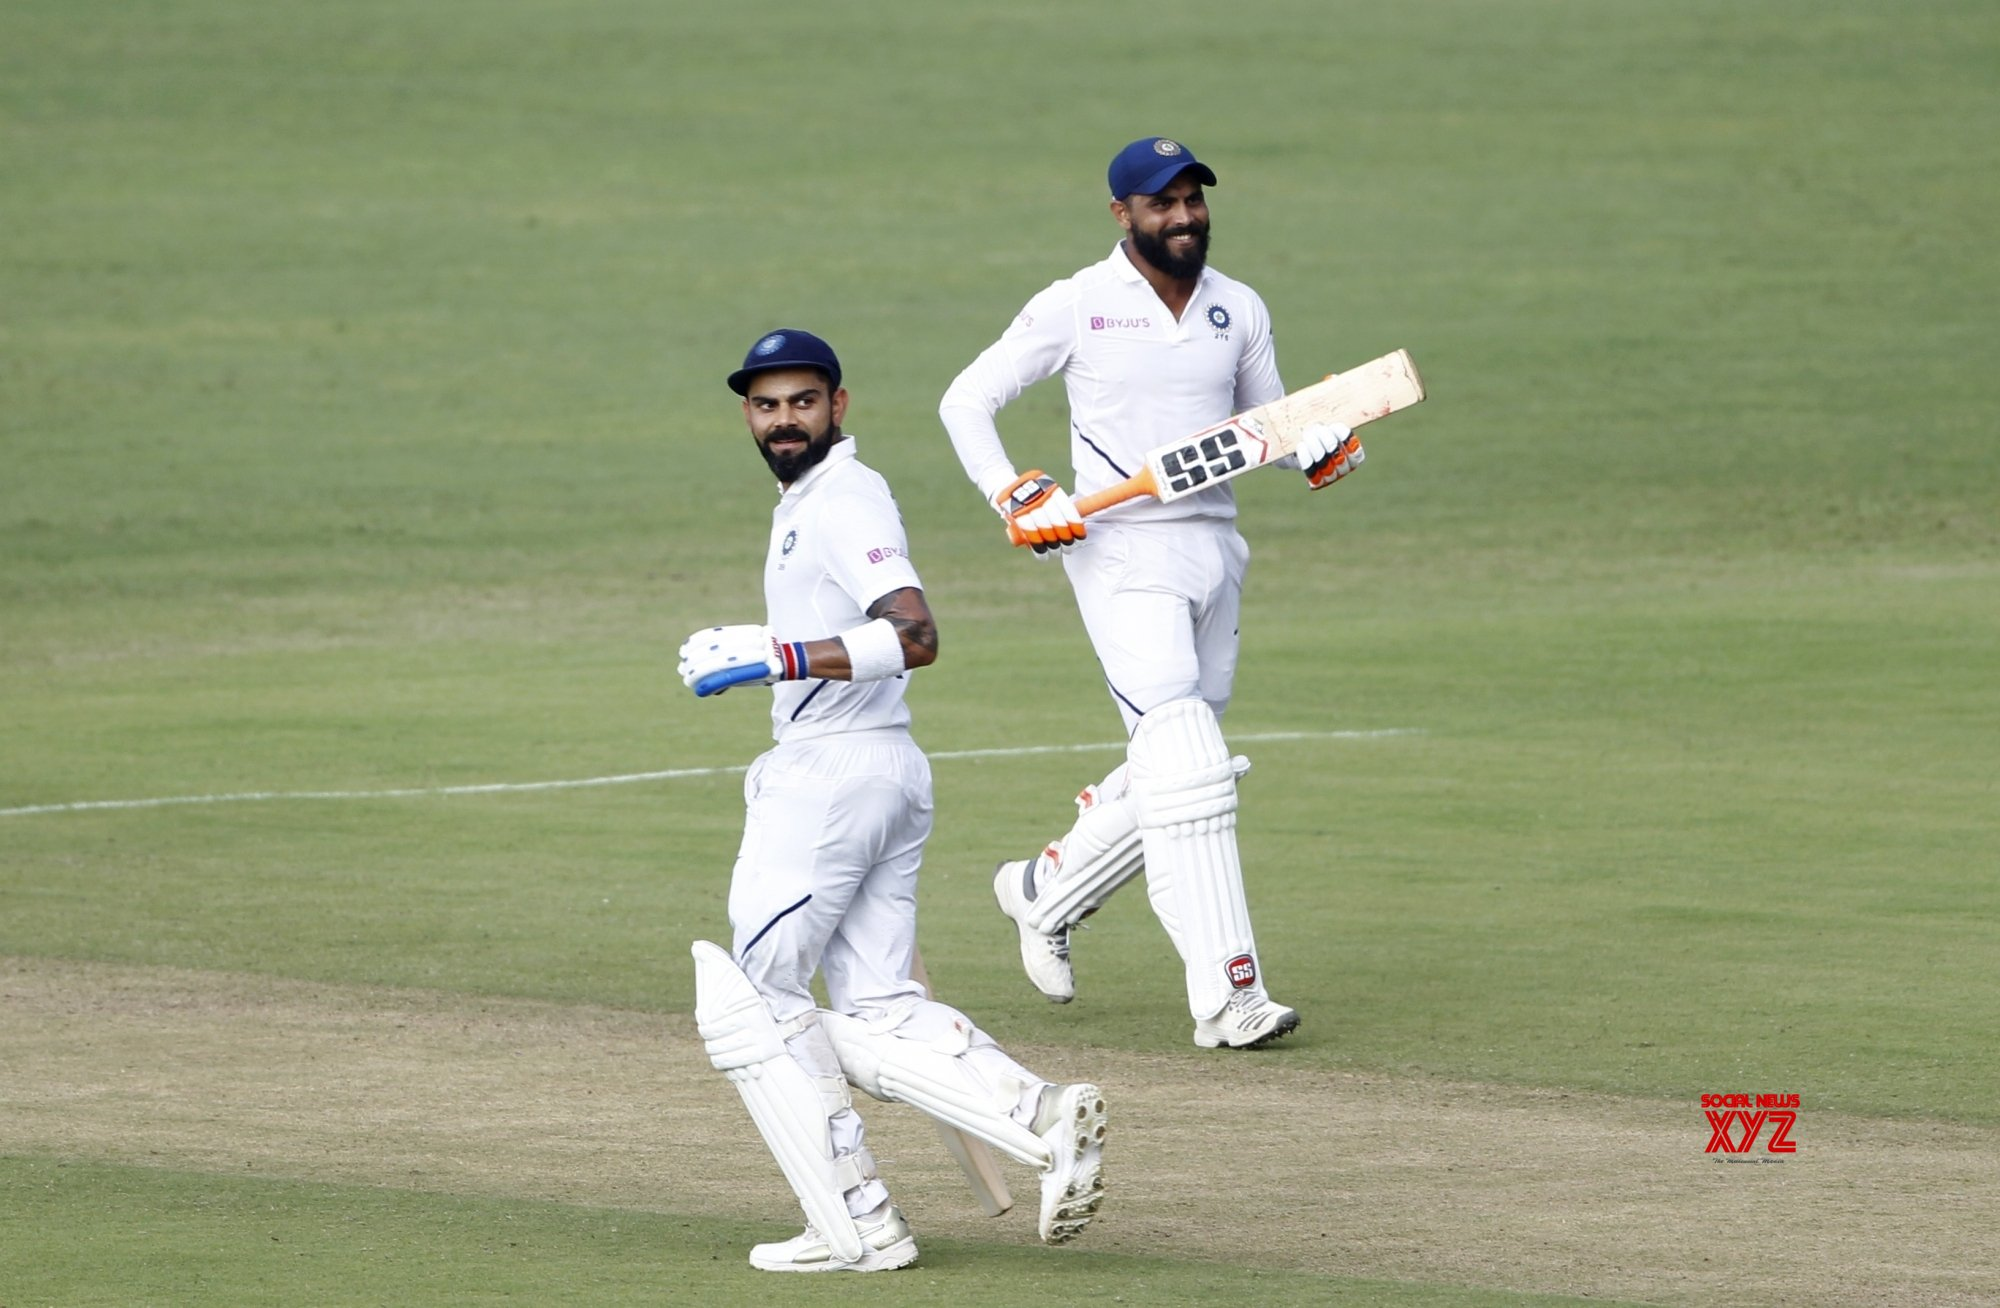 Pune: 2nd Test - India Vs South Africa - Day 2 (Batch - 17) #Gallery